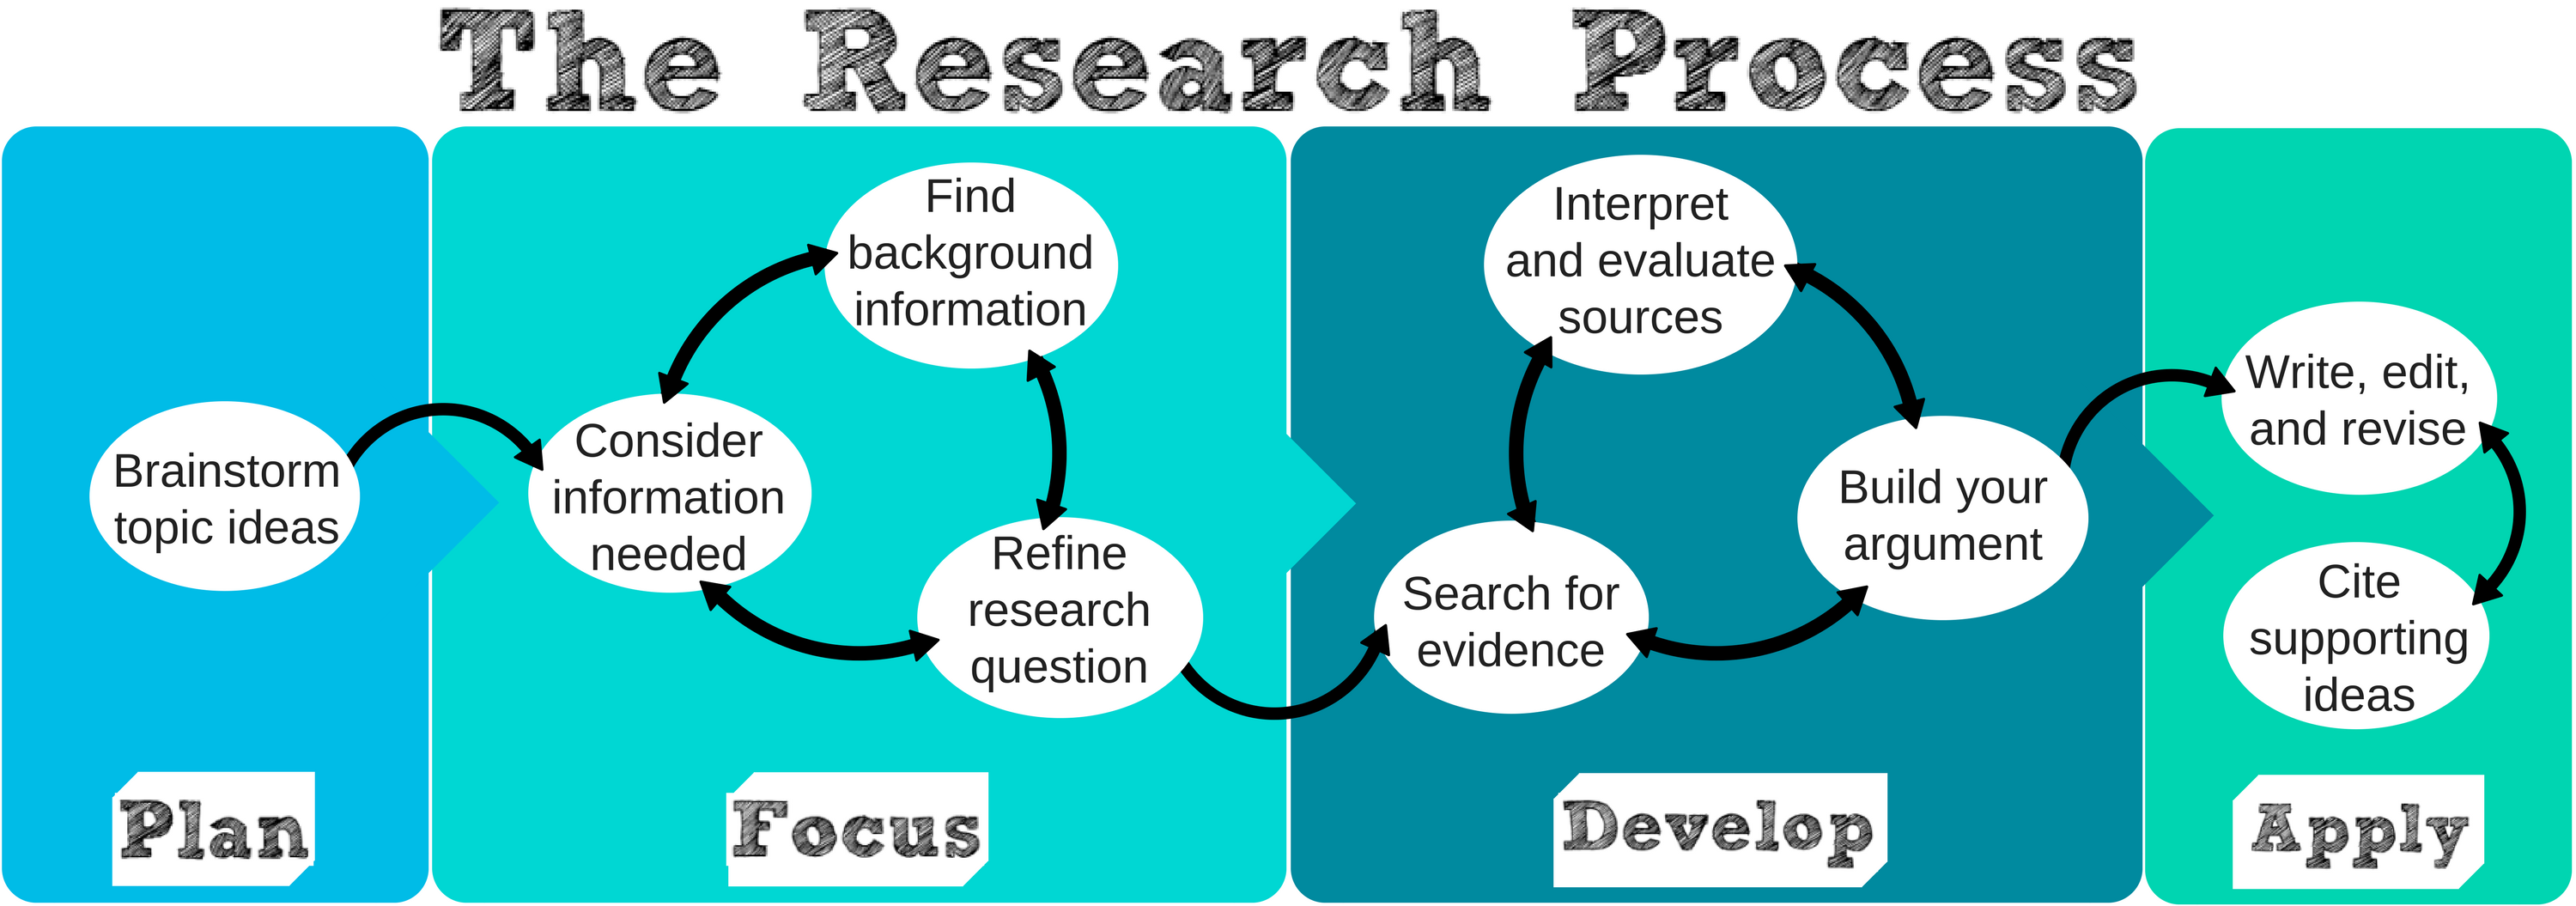 breakdown of research process with blocks from left right reading plan focus develop apply